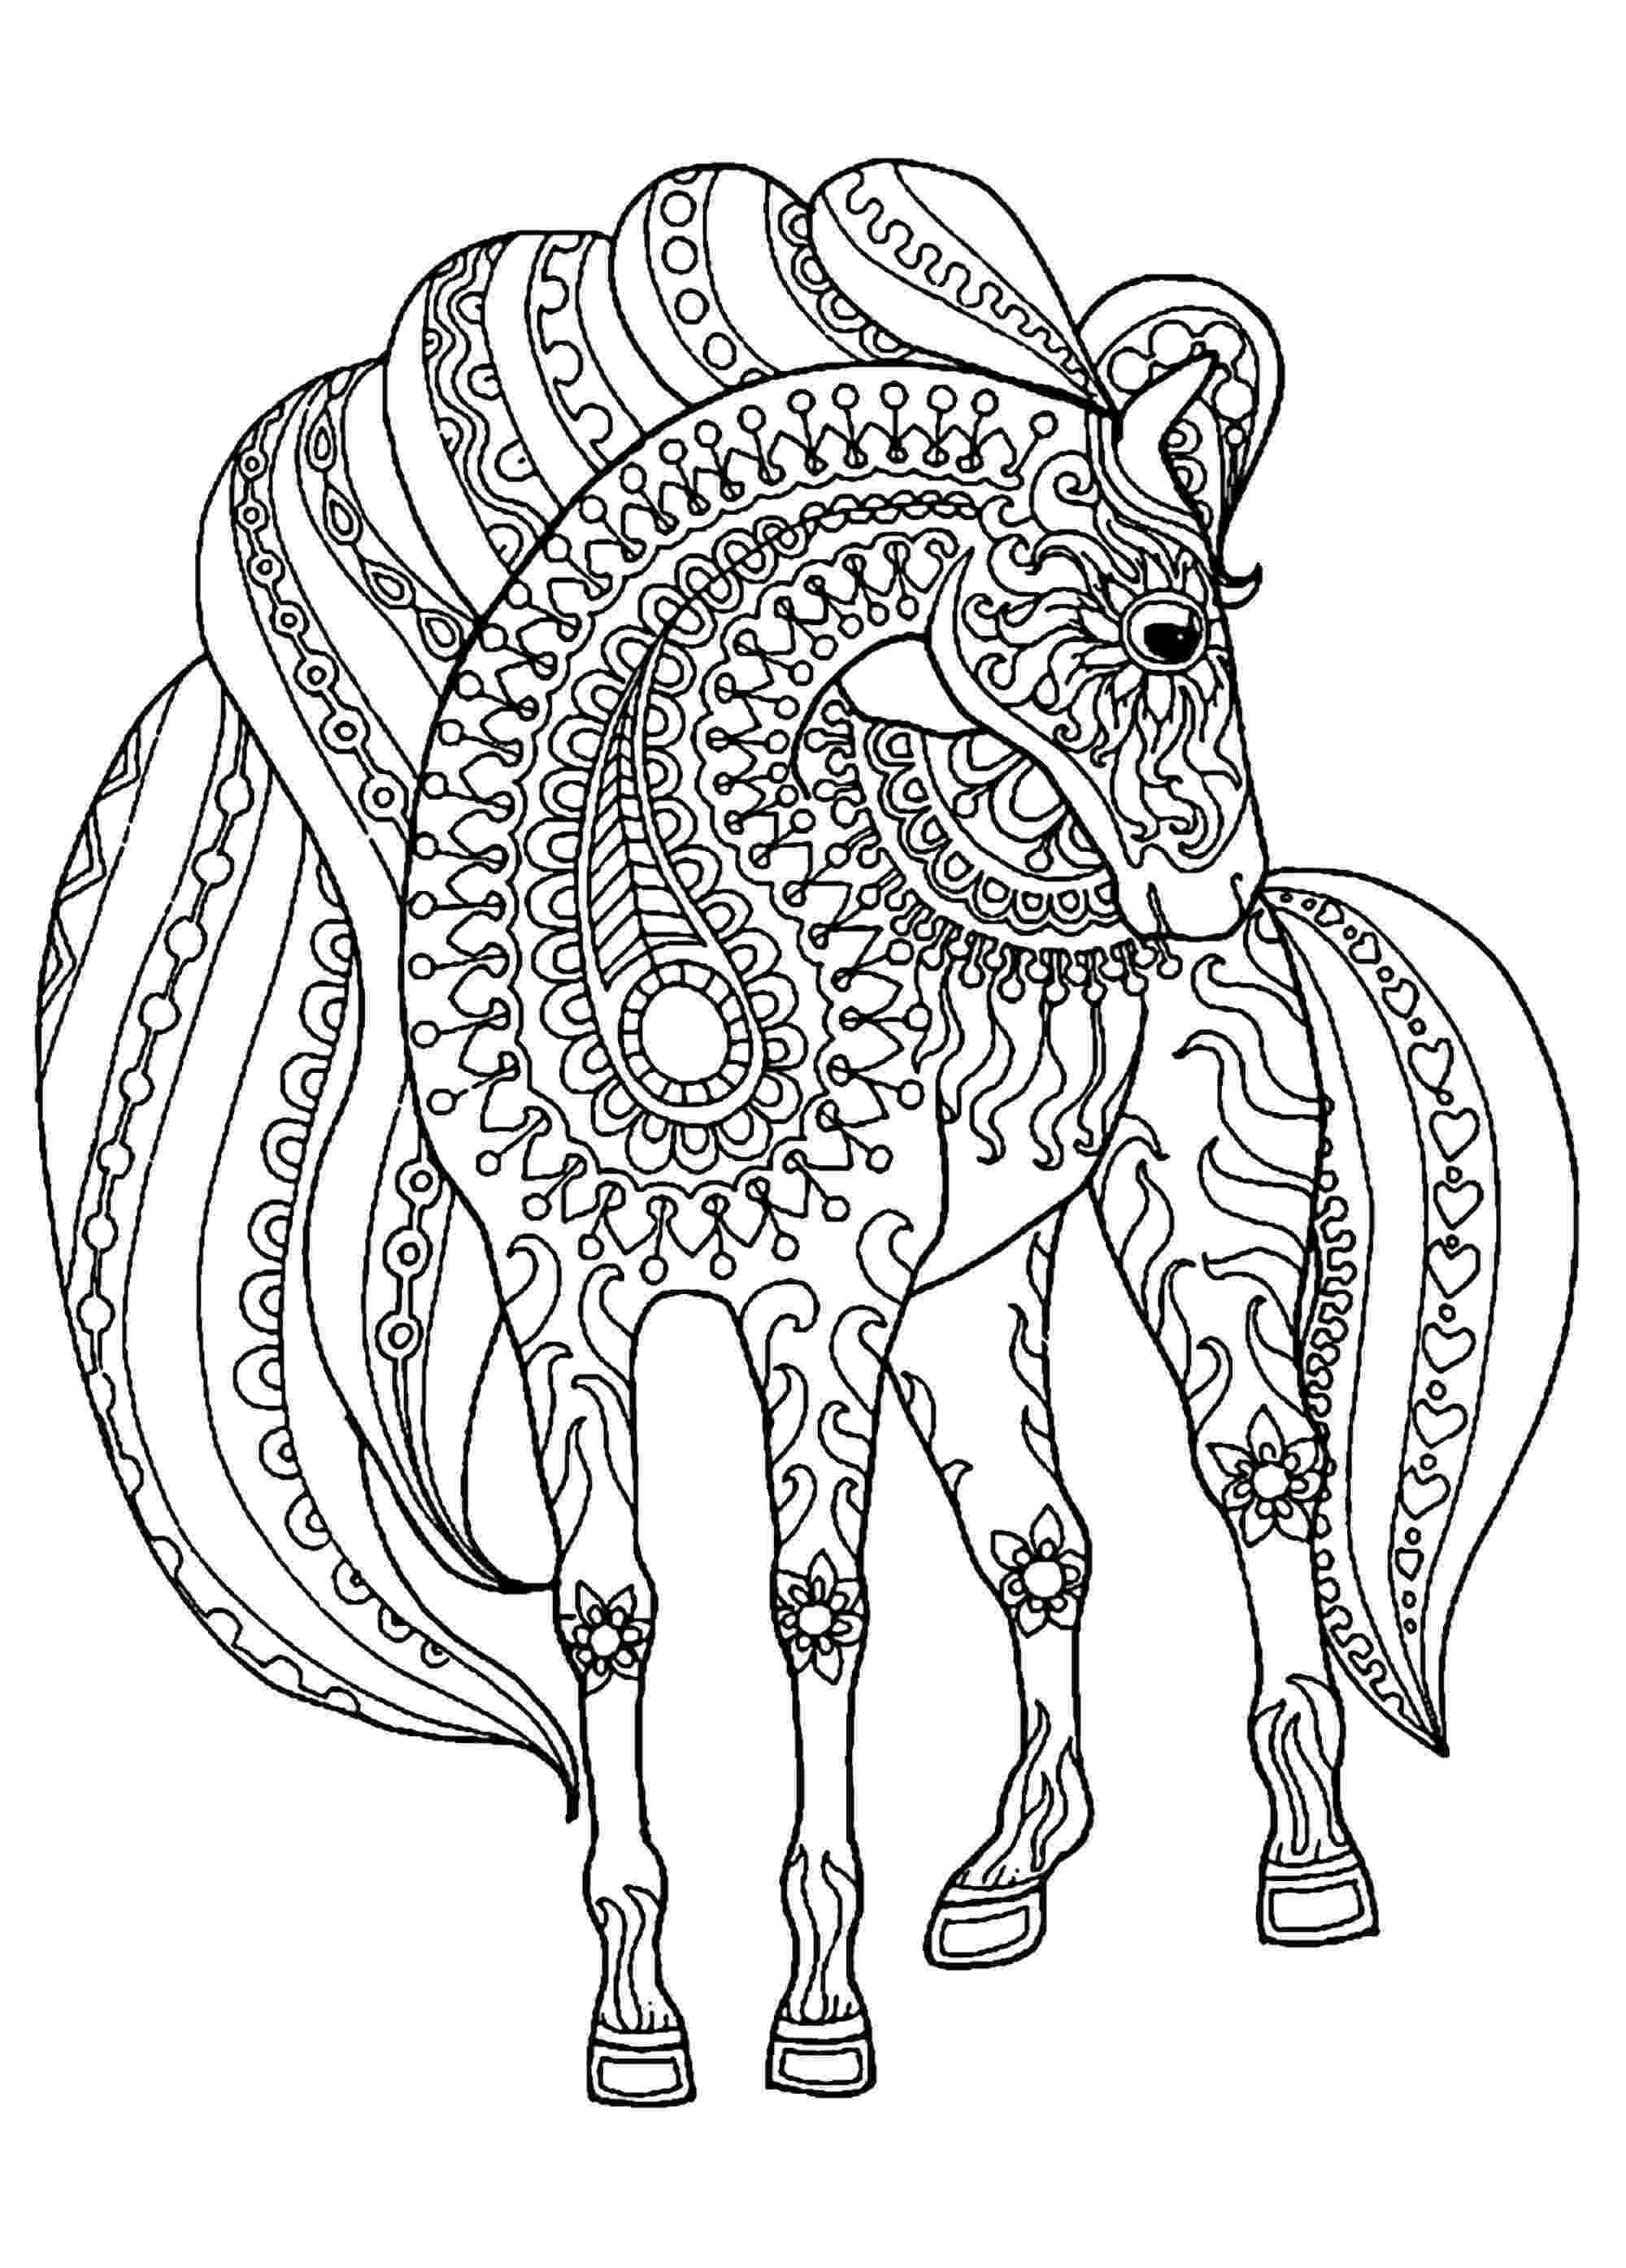 animals coloring book pages jungle animal coloring pages to download and print for free coloring book animals pages